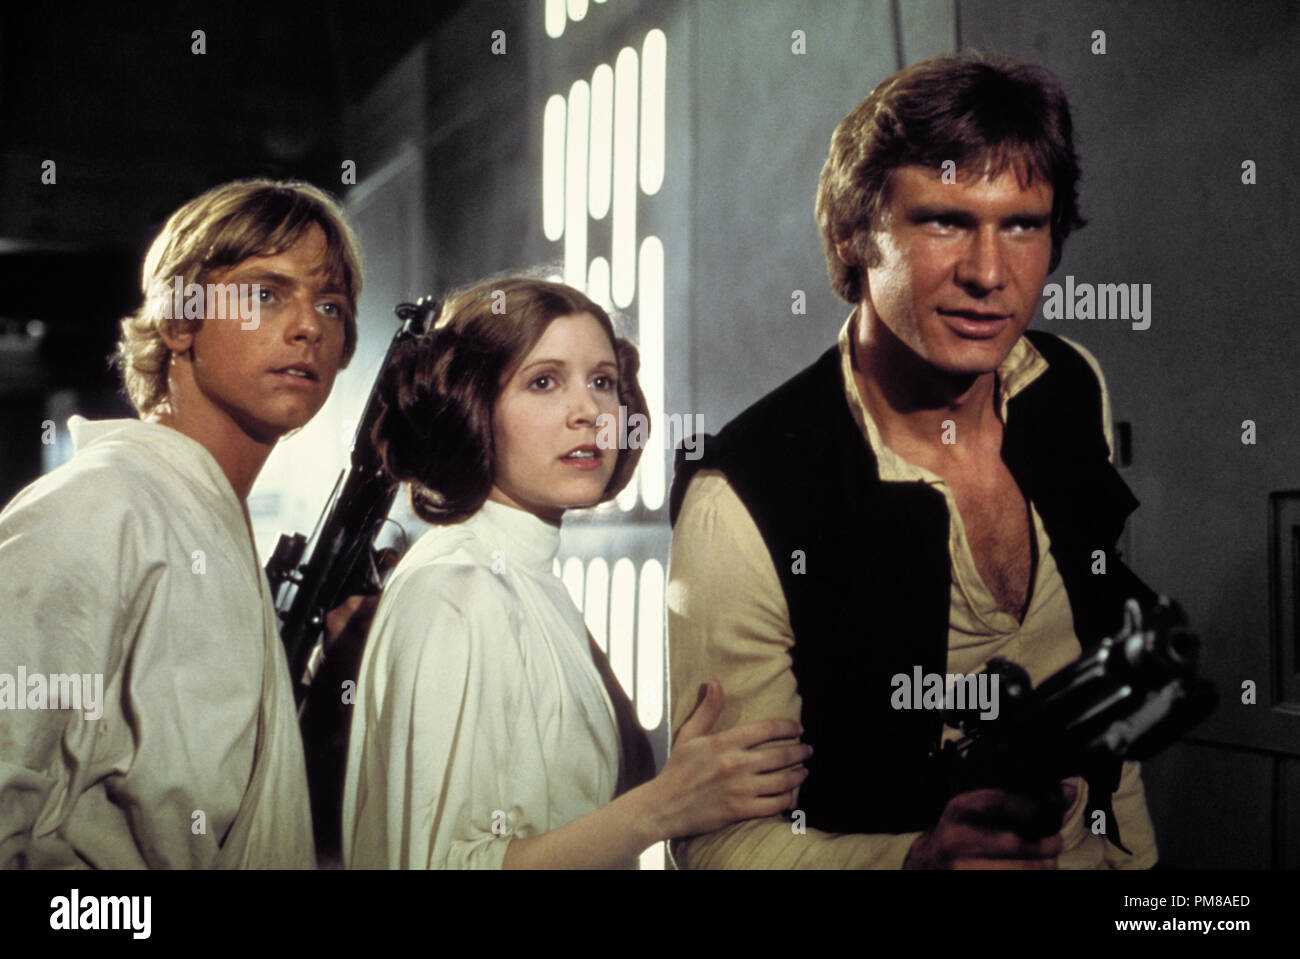 Studio Publicity Still of Harrison Ford, Carrie Fisher and Mark Hamill in 'Star Wars' 1977 20th Century Fox File Reference # 31780_705 - Stock Image